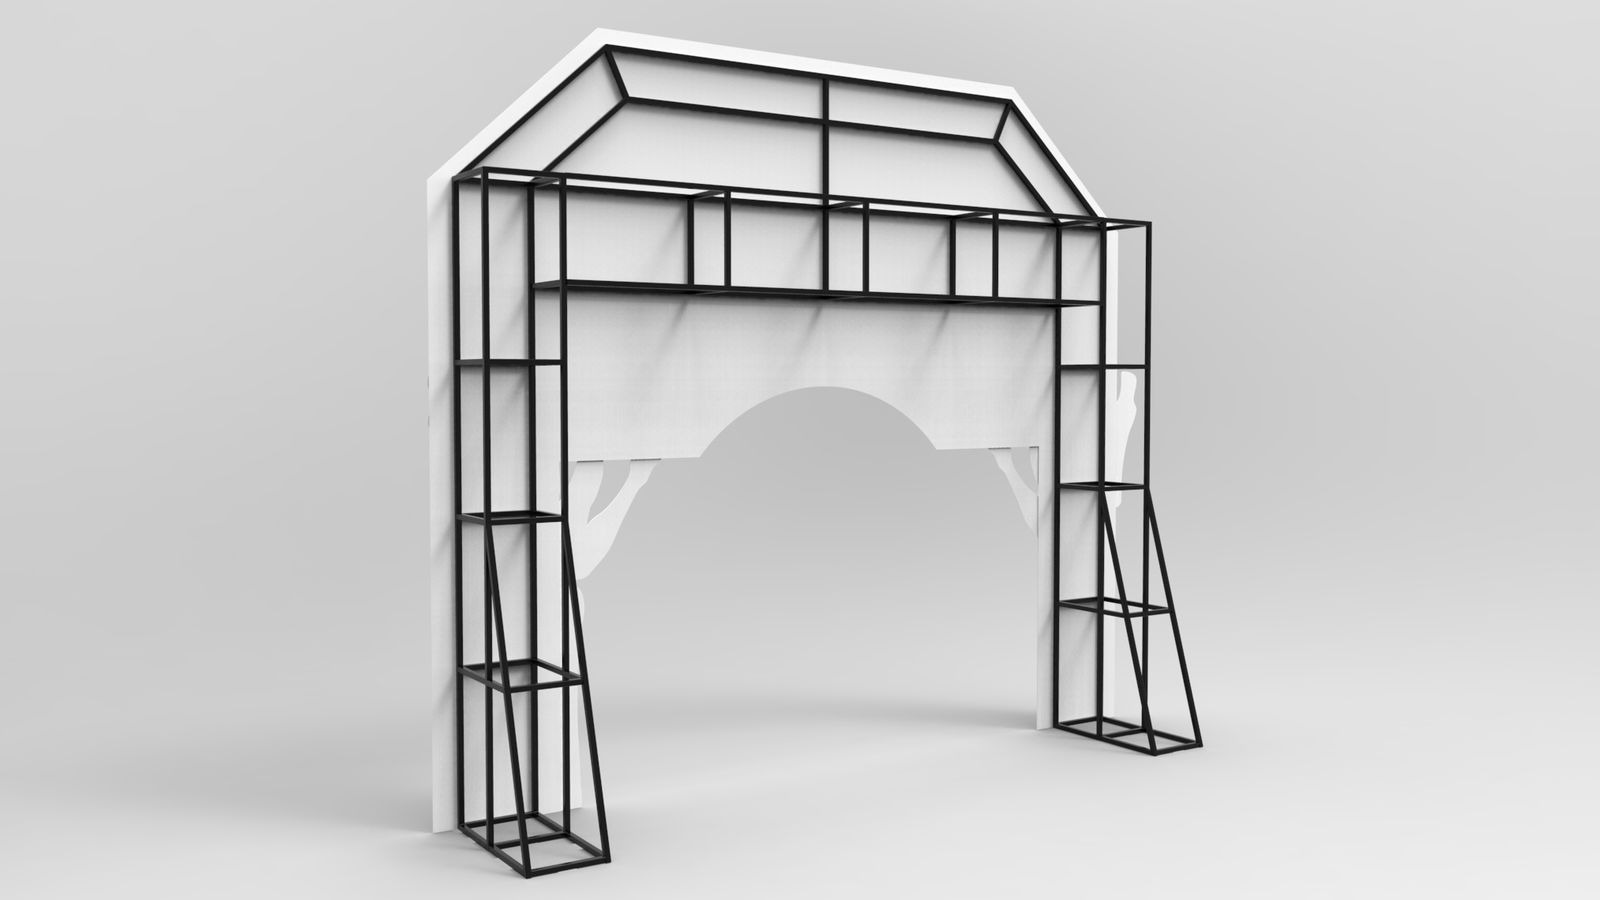 display 3d rendering